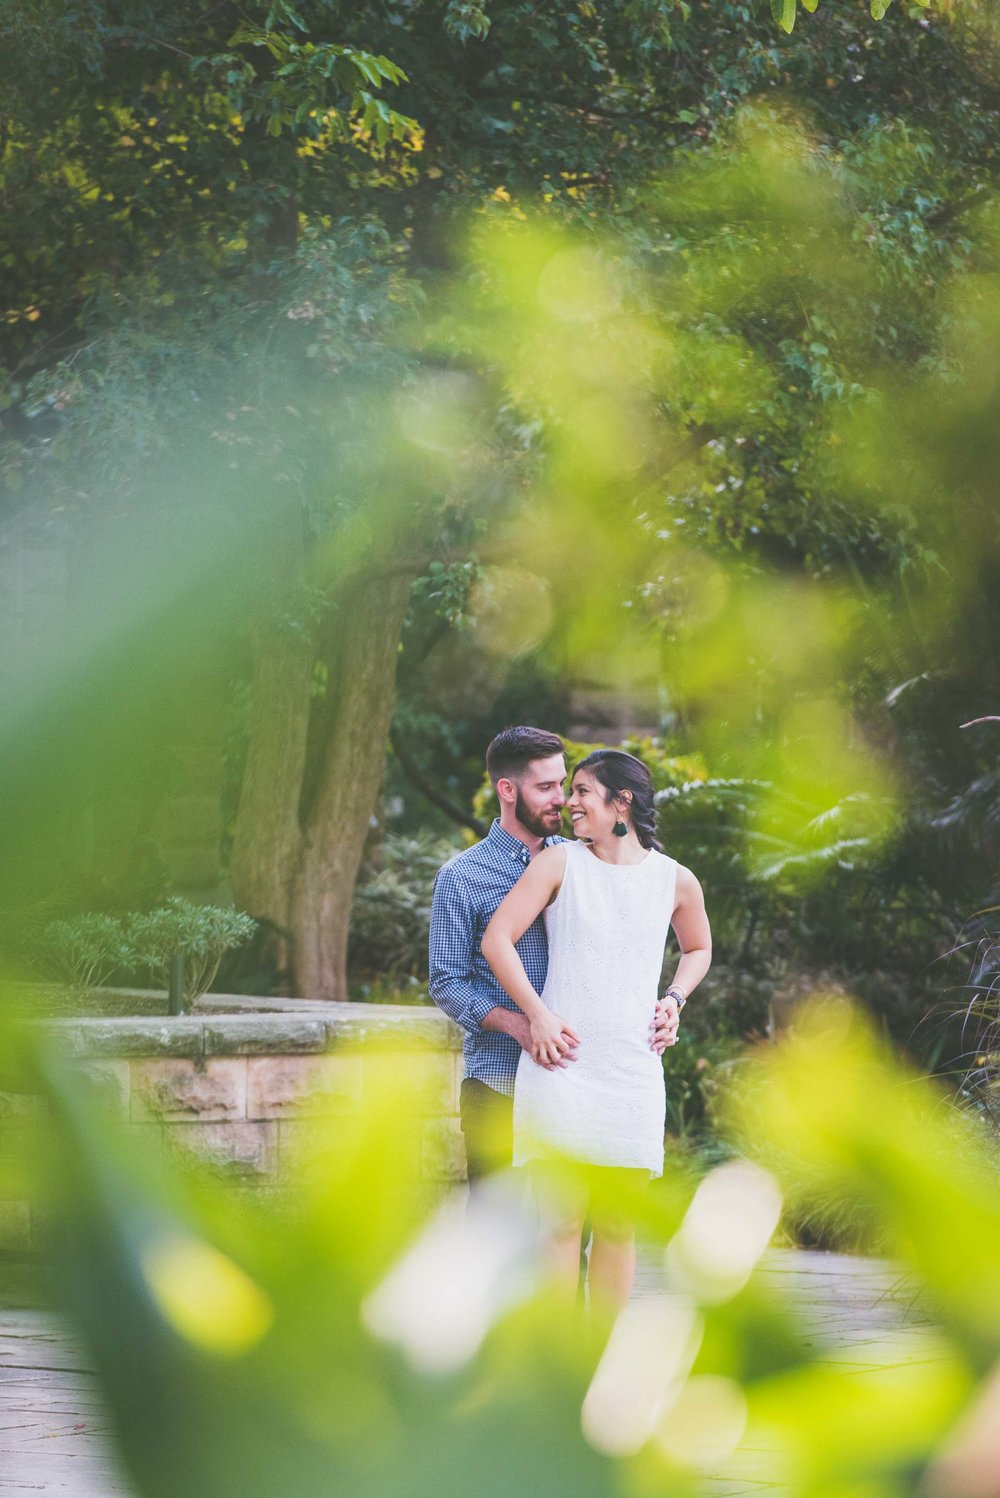 Engagement portrait - Couple looking at each other in Botanic Gardens Sydney - Photo credit Nicola Bailey.jpg